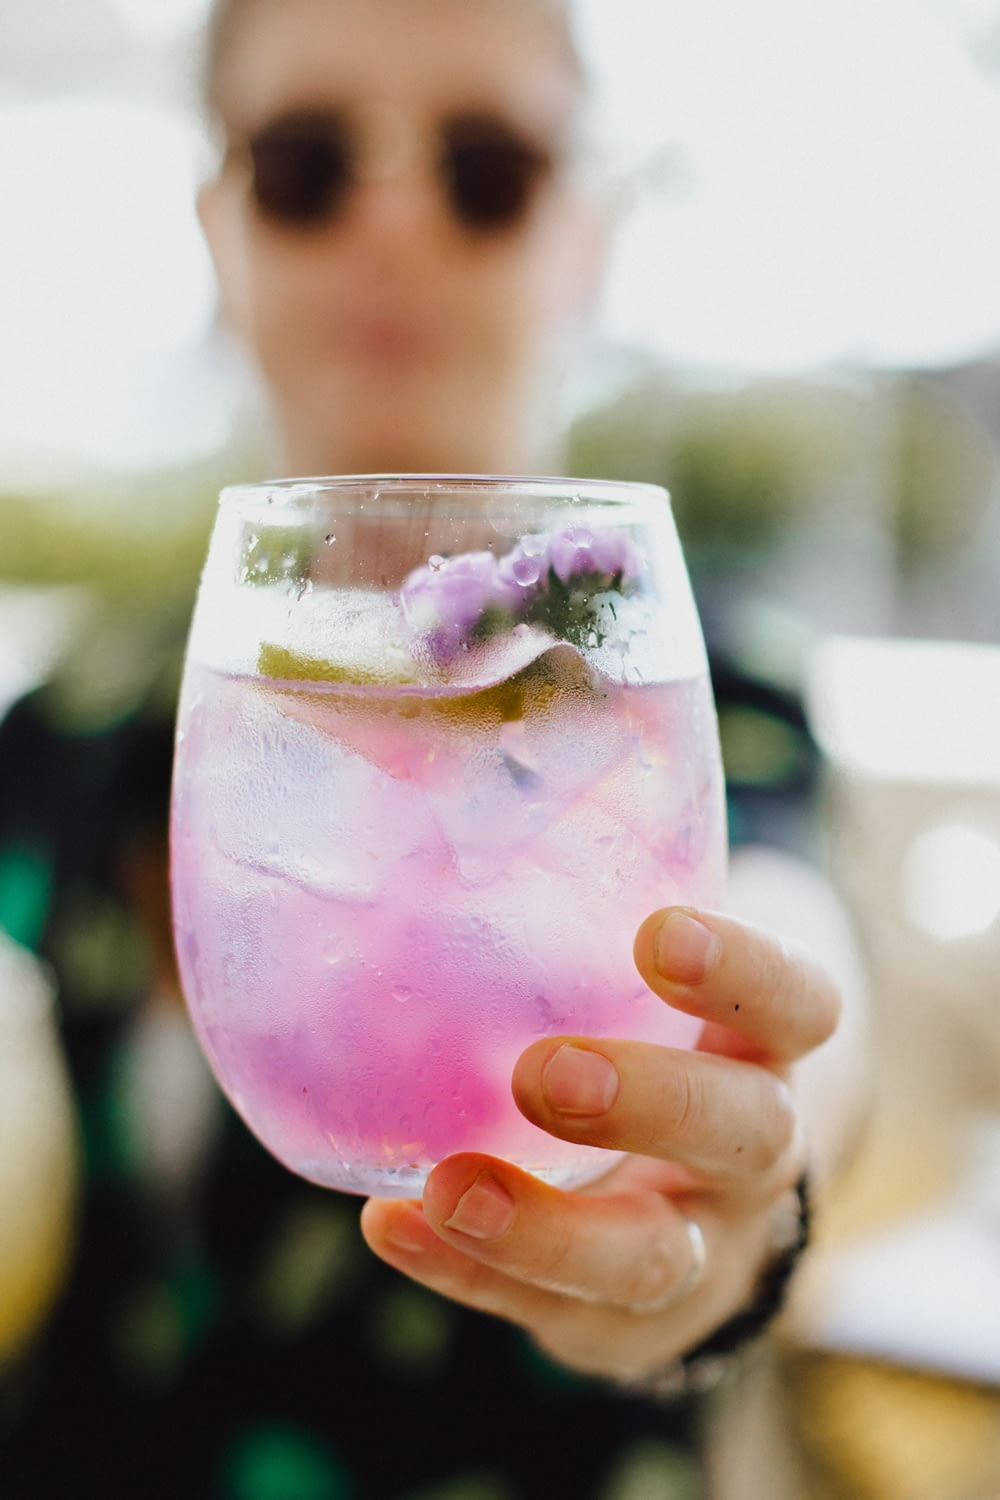 person holding clear drinking glass with pink liquid